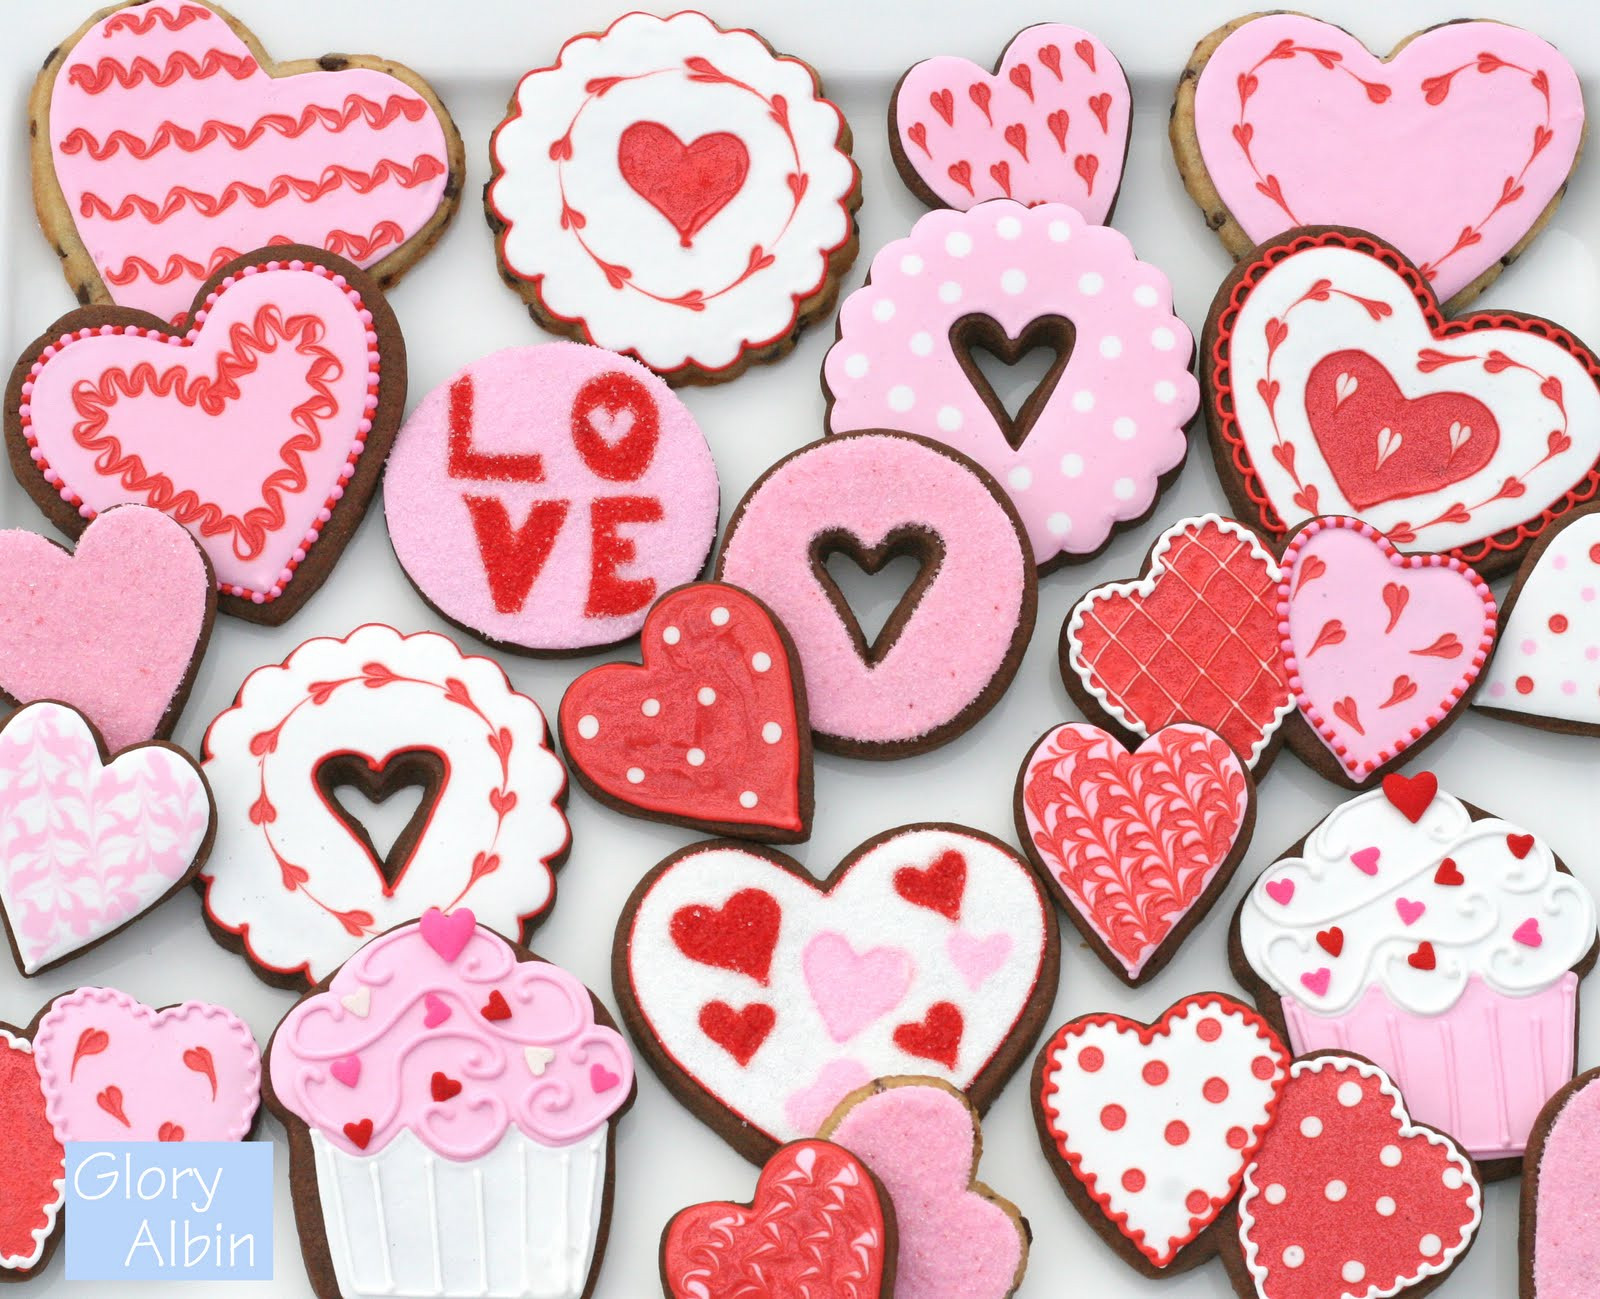 Sugar Cookies With Icing  Decorating Sugar Cookies with Royal Icing – Glorious Treats